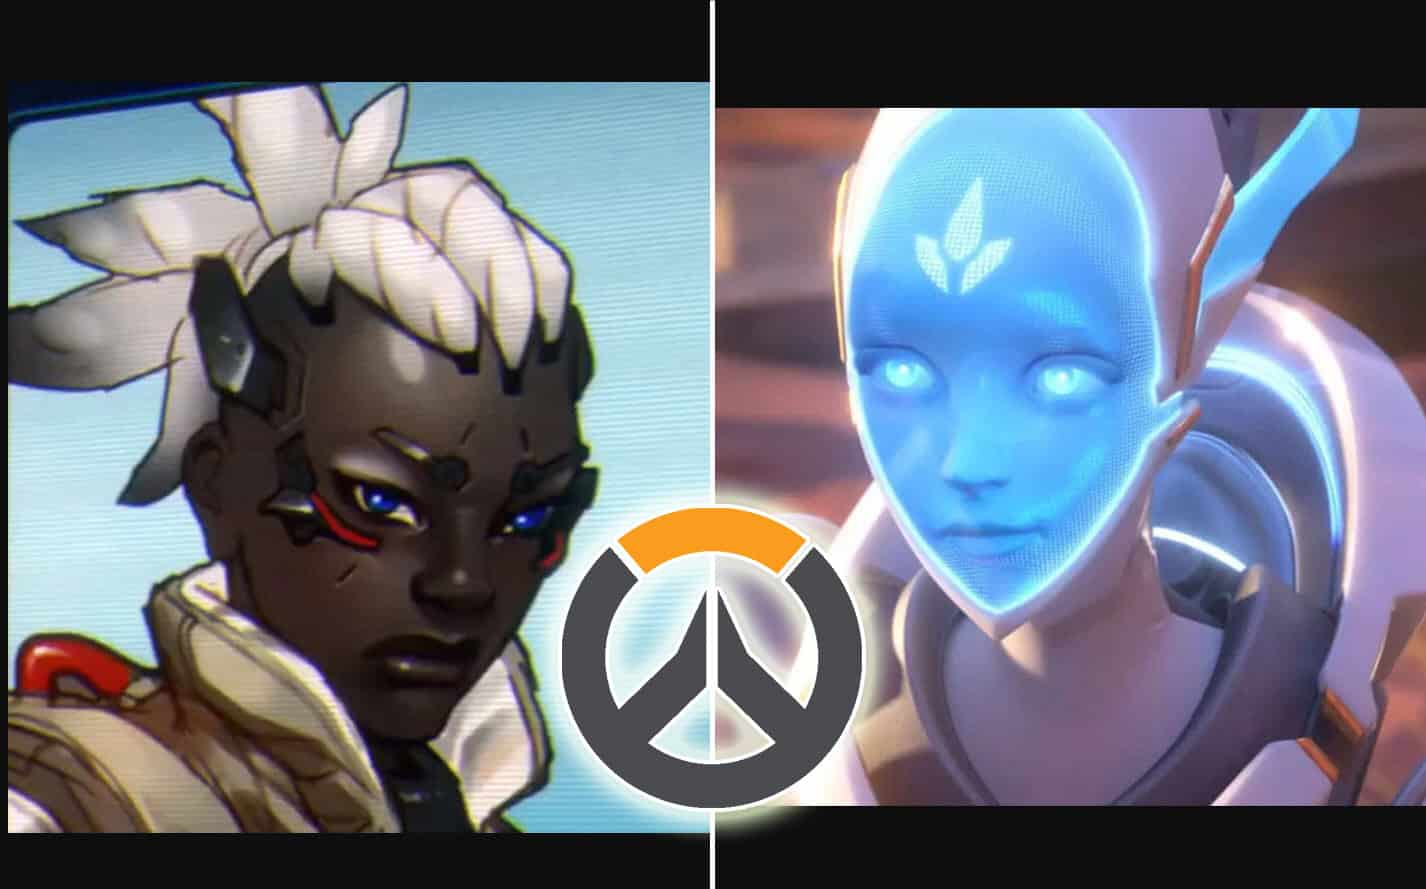 More Clarity On Who The New Overwatch Hero Might Be